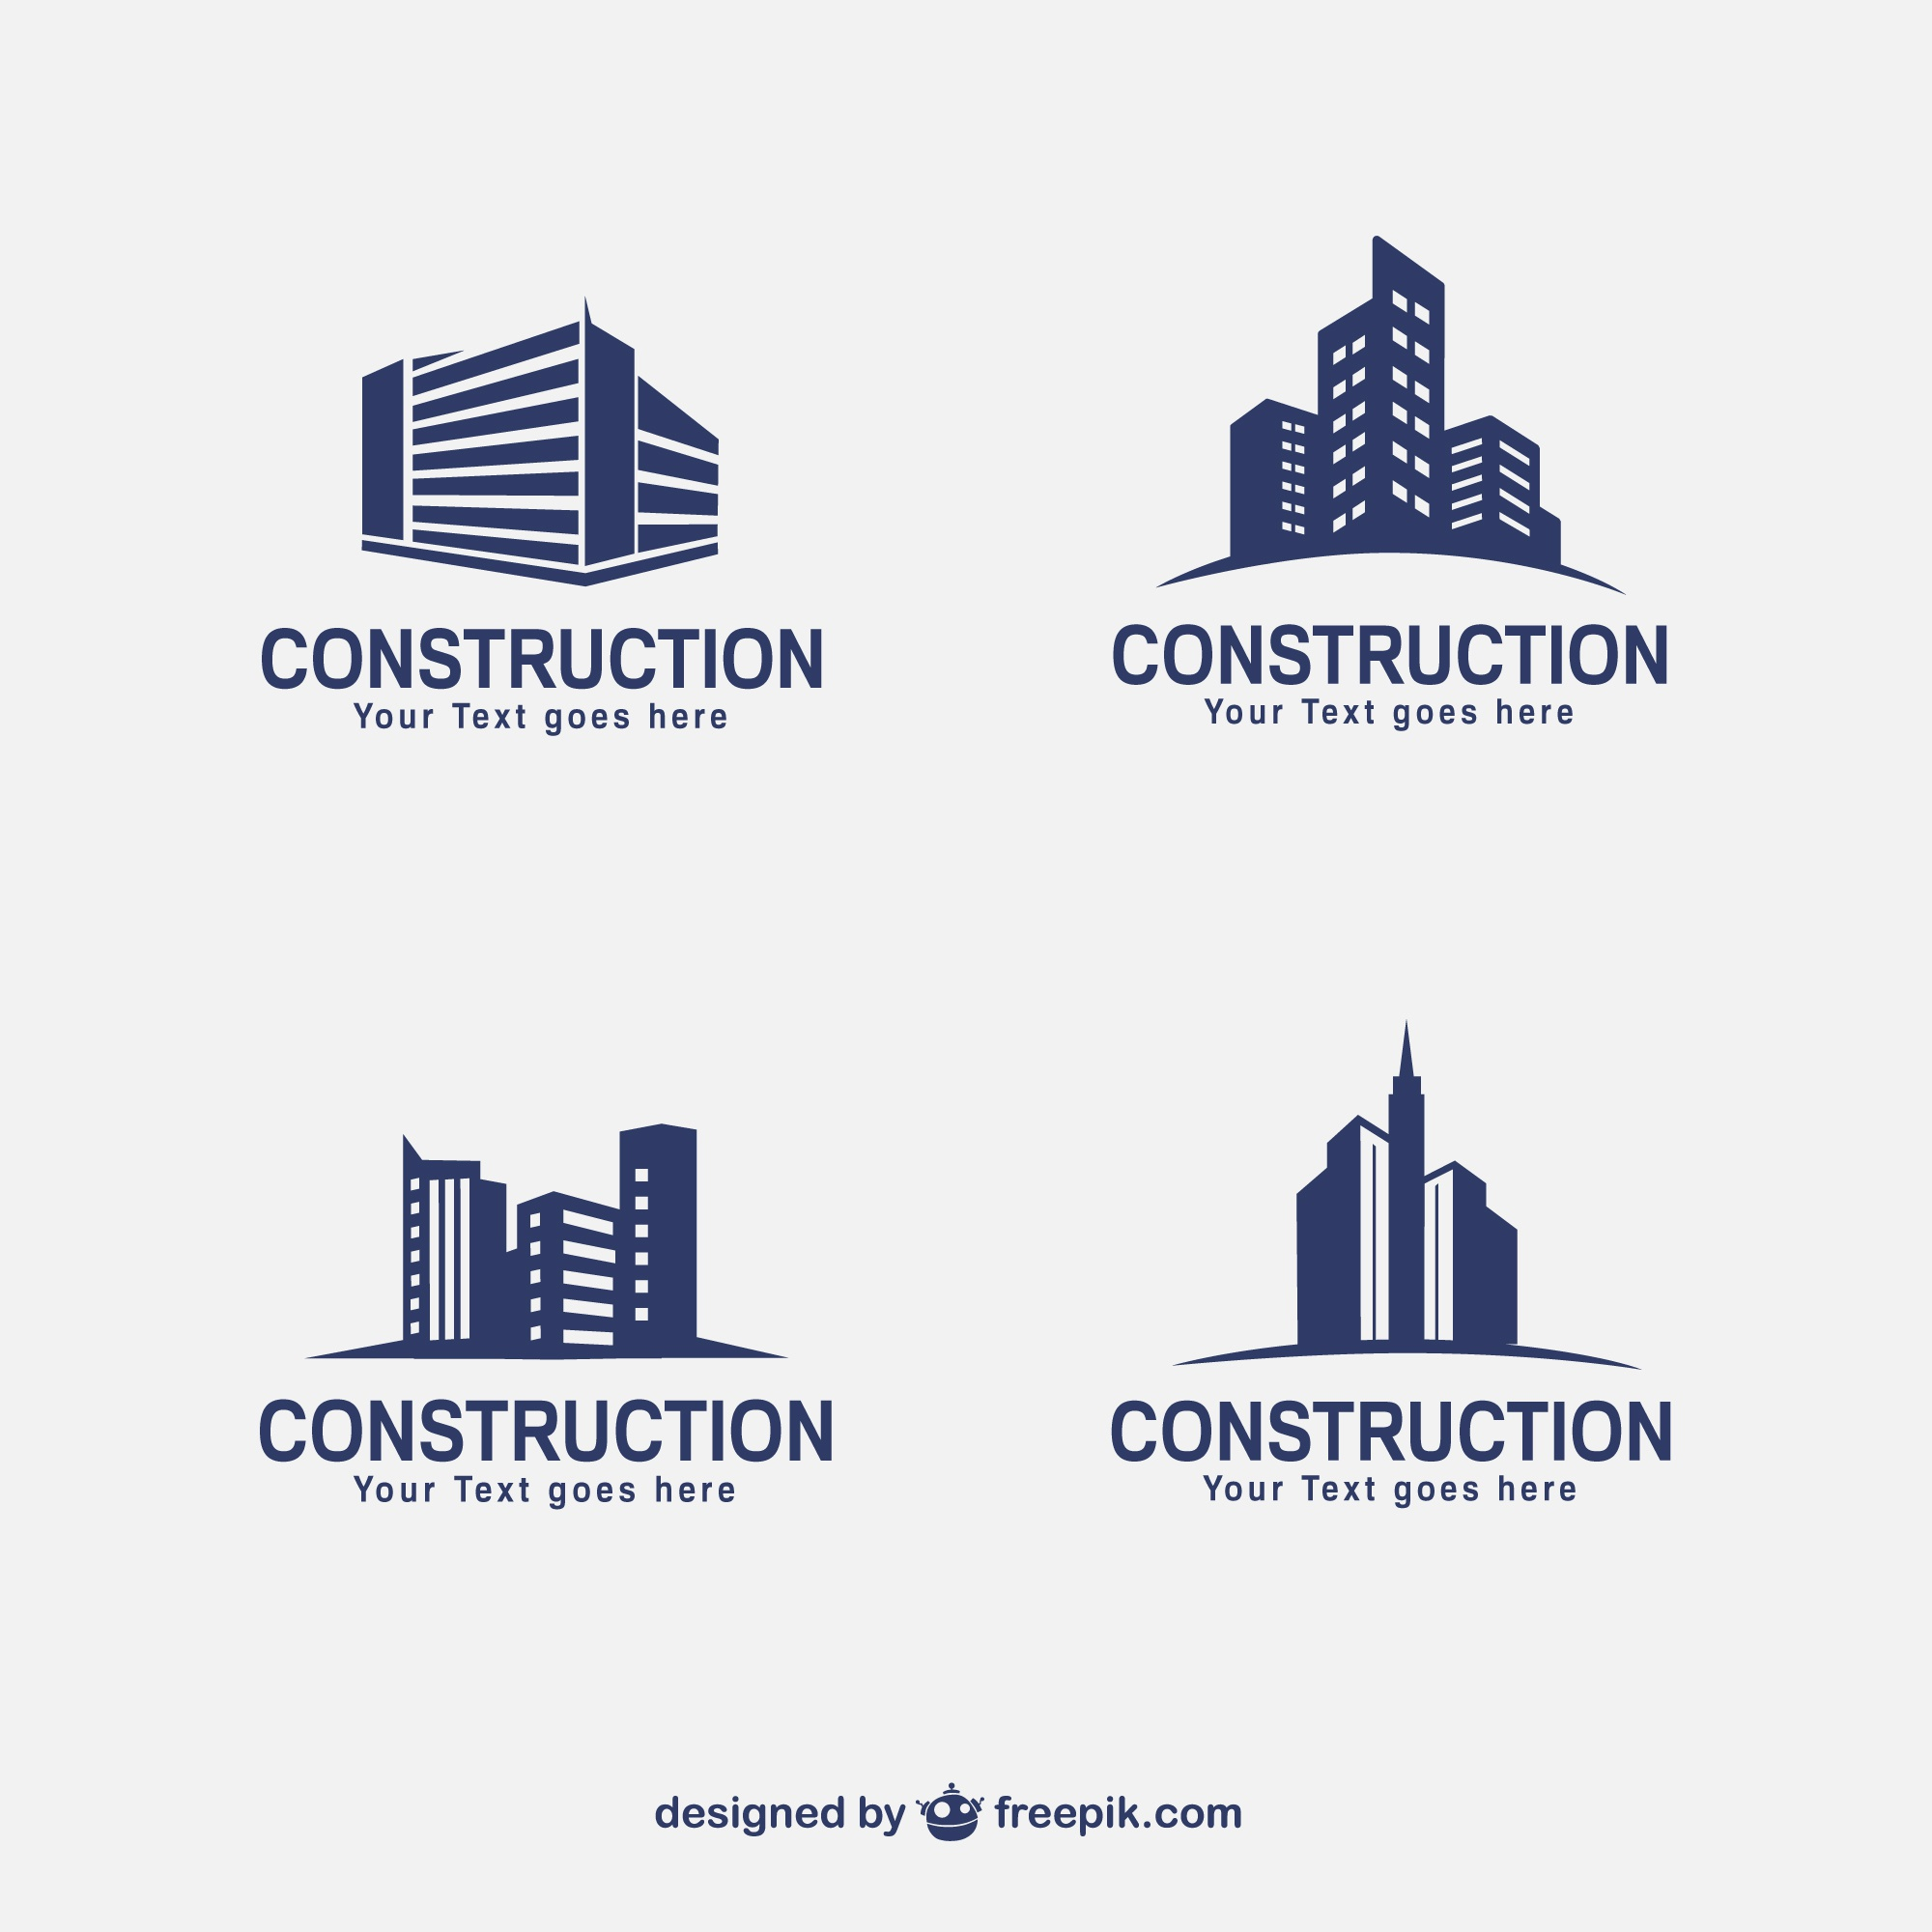 Construction buildings